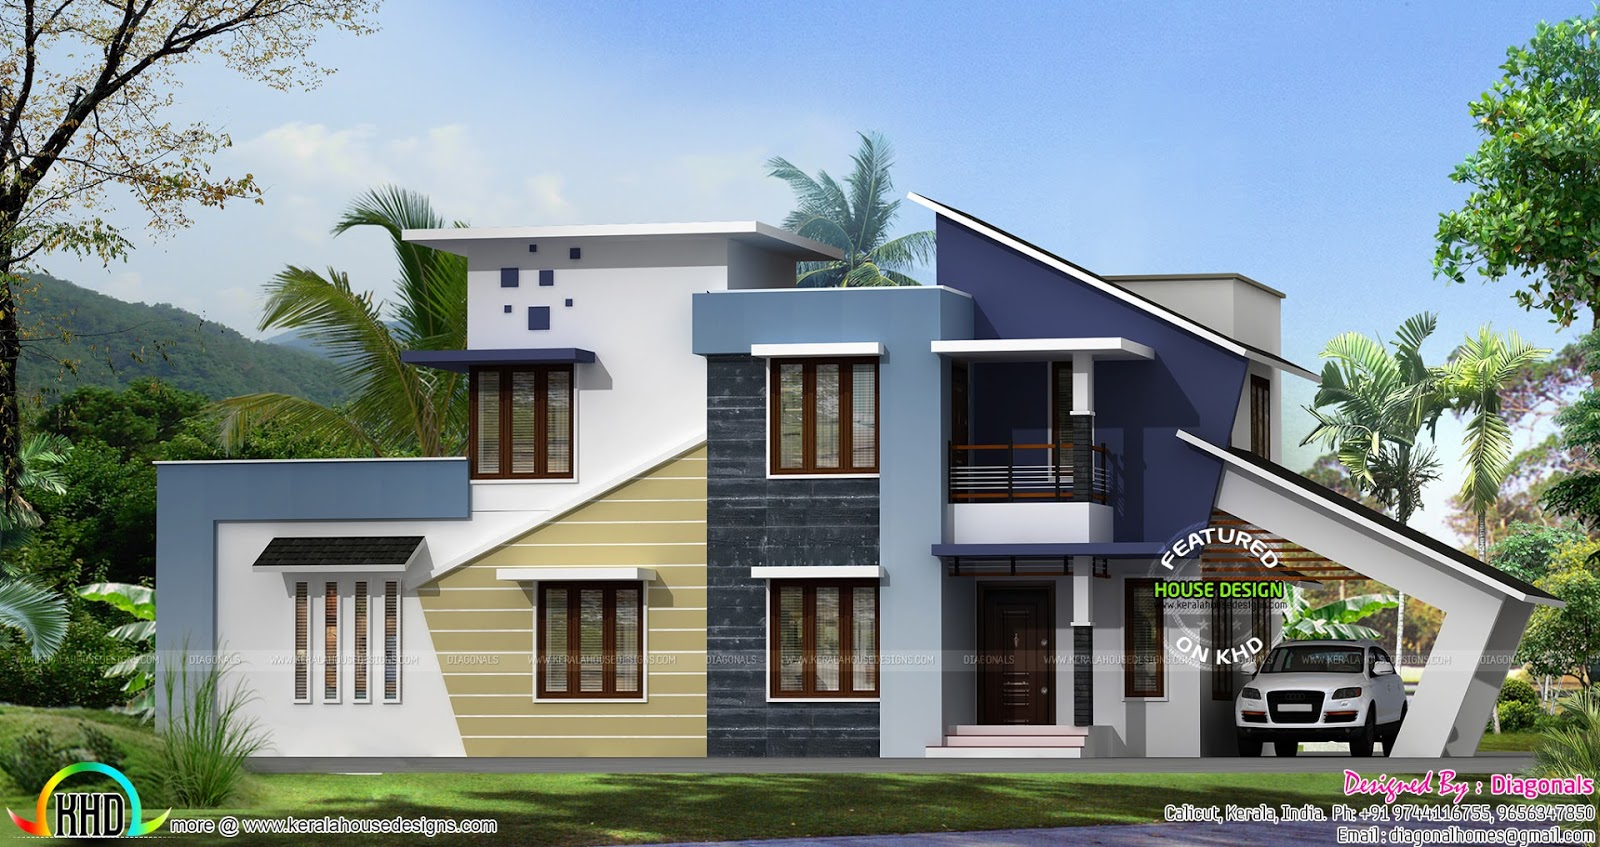 New home designs latest modern house designs modern house design series mhd 2015016 pinoy eplans modern small house plans simple modern house plan